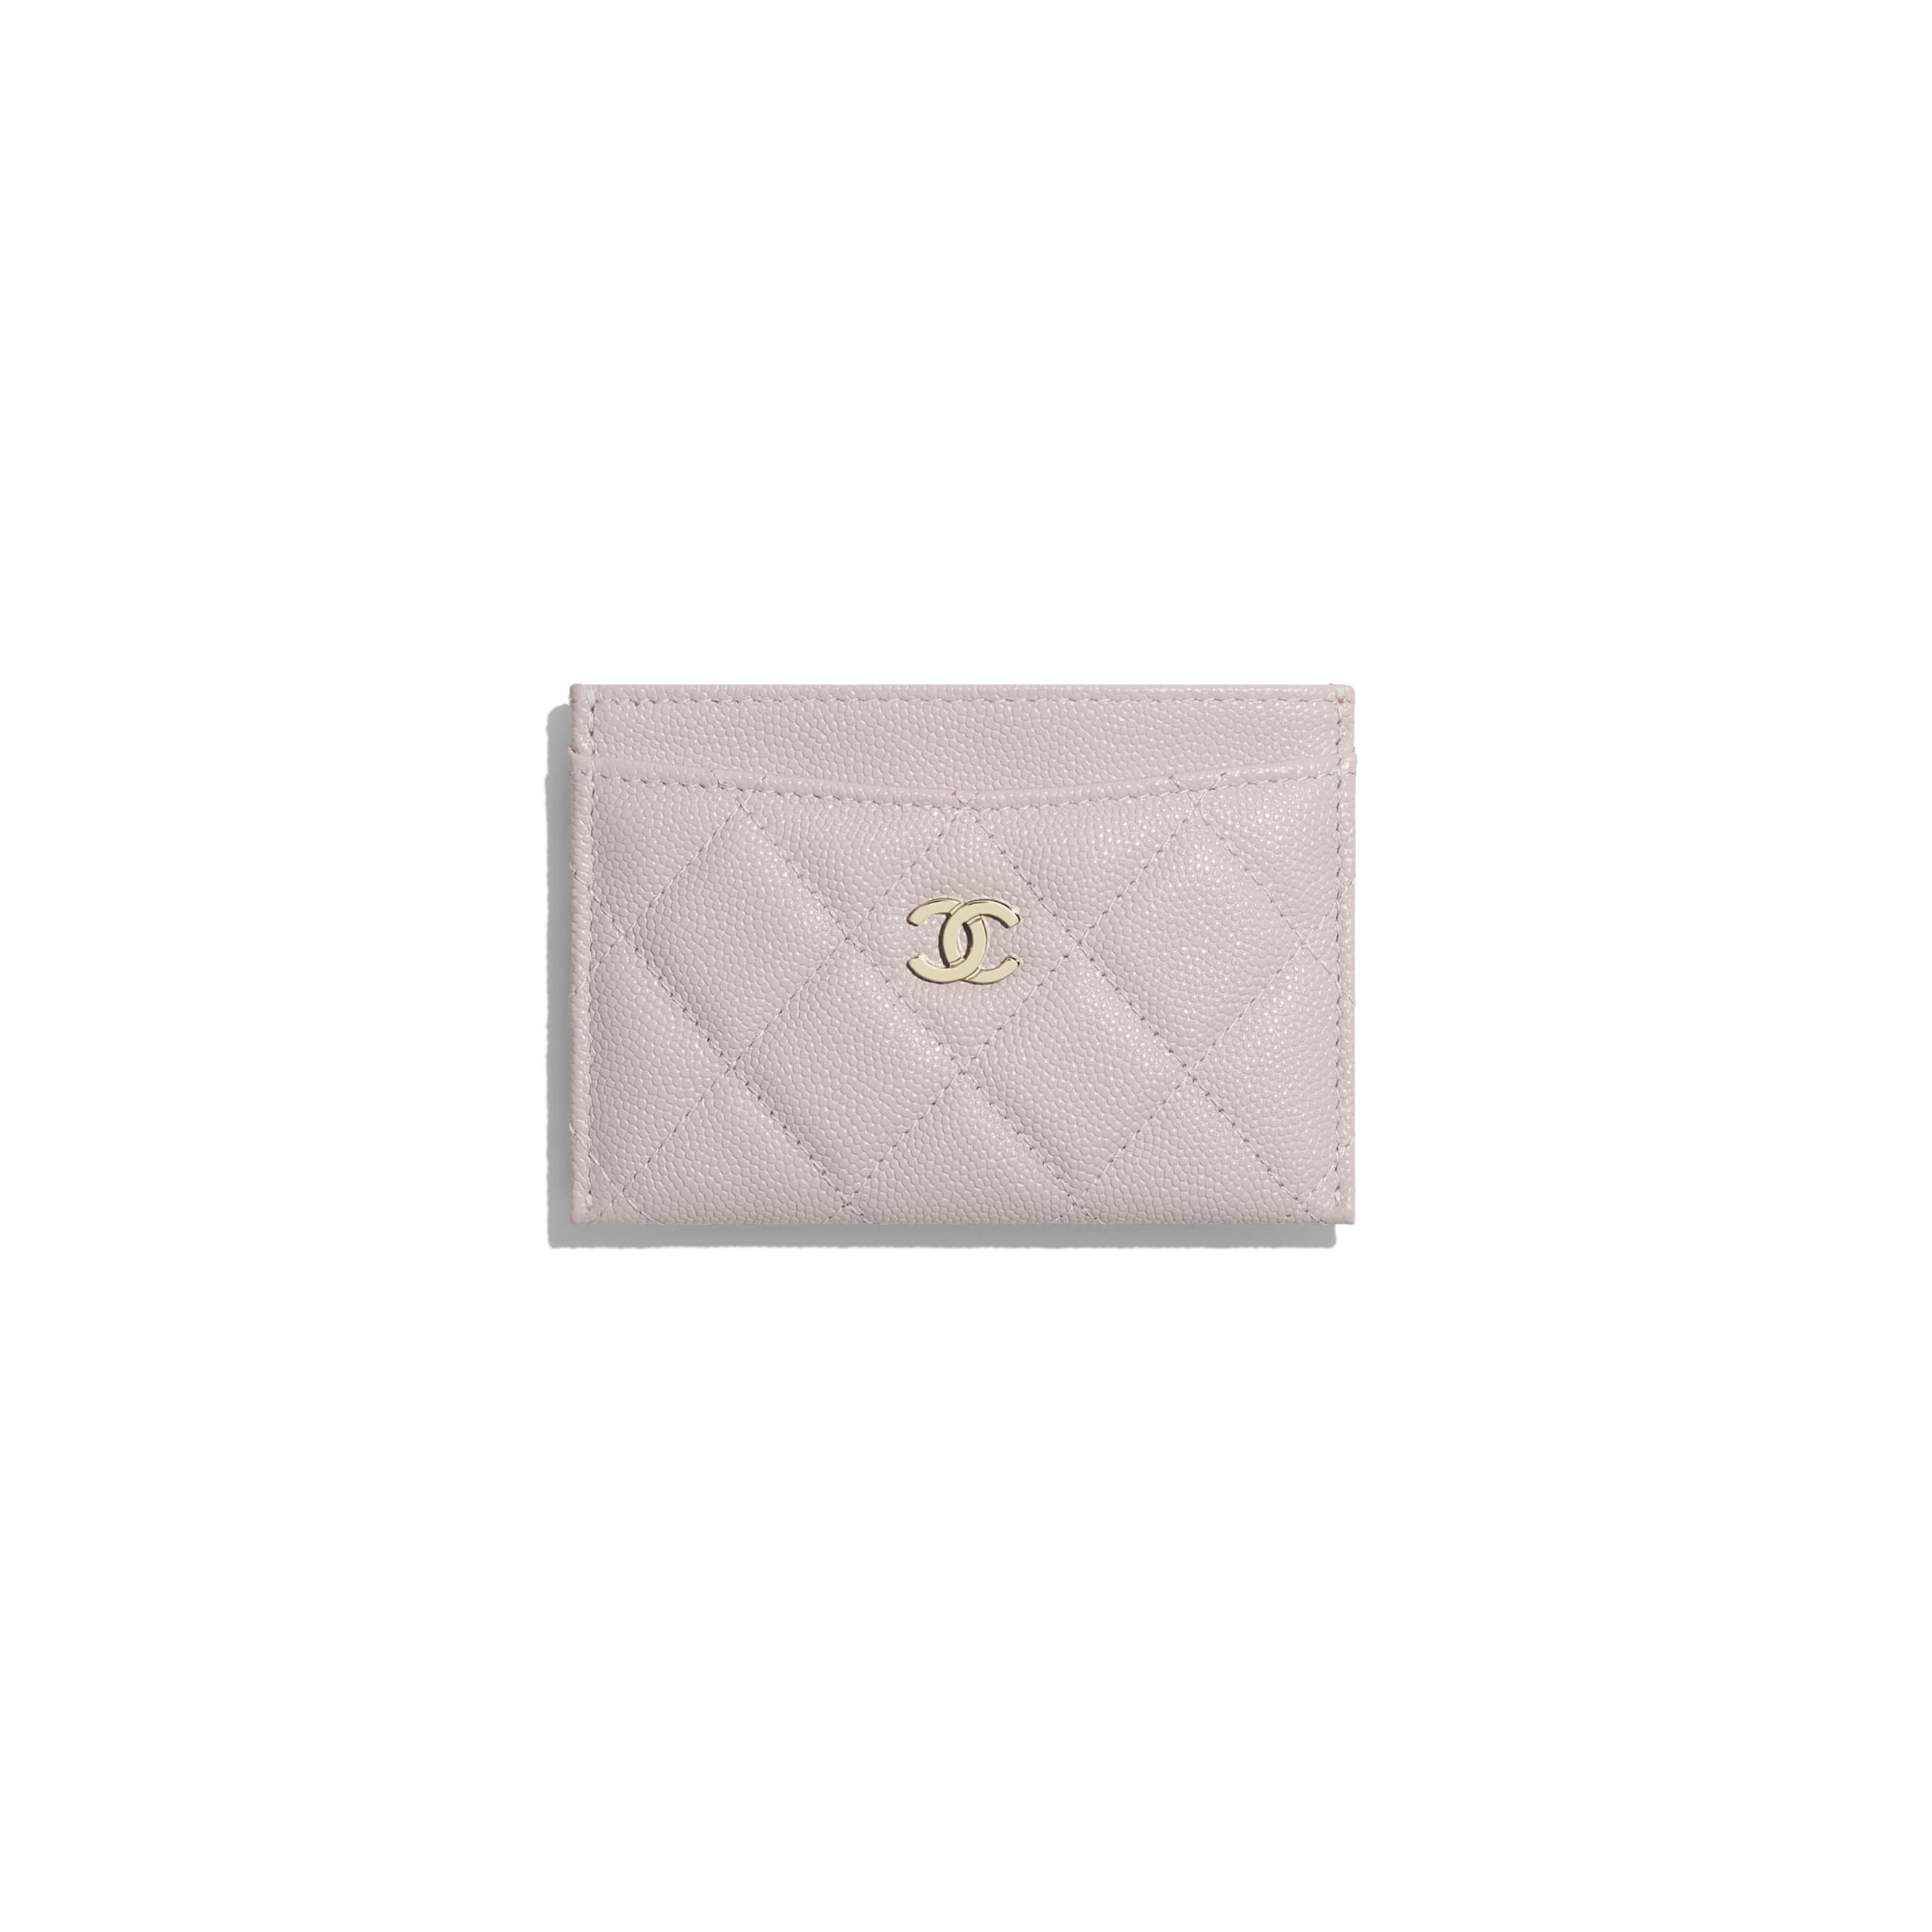 Classic Card Holder - Light Pink - Grained Calfskin & Gold-Tone Metal - CHANEL - Default view - see standard sized version